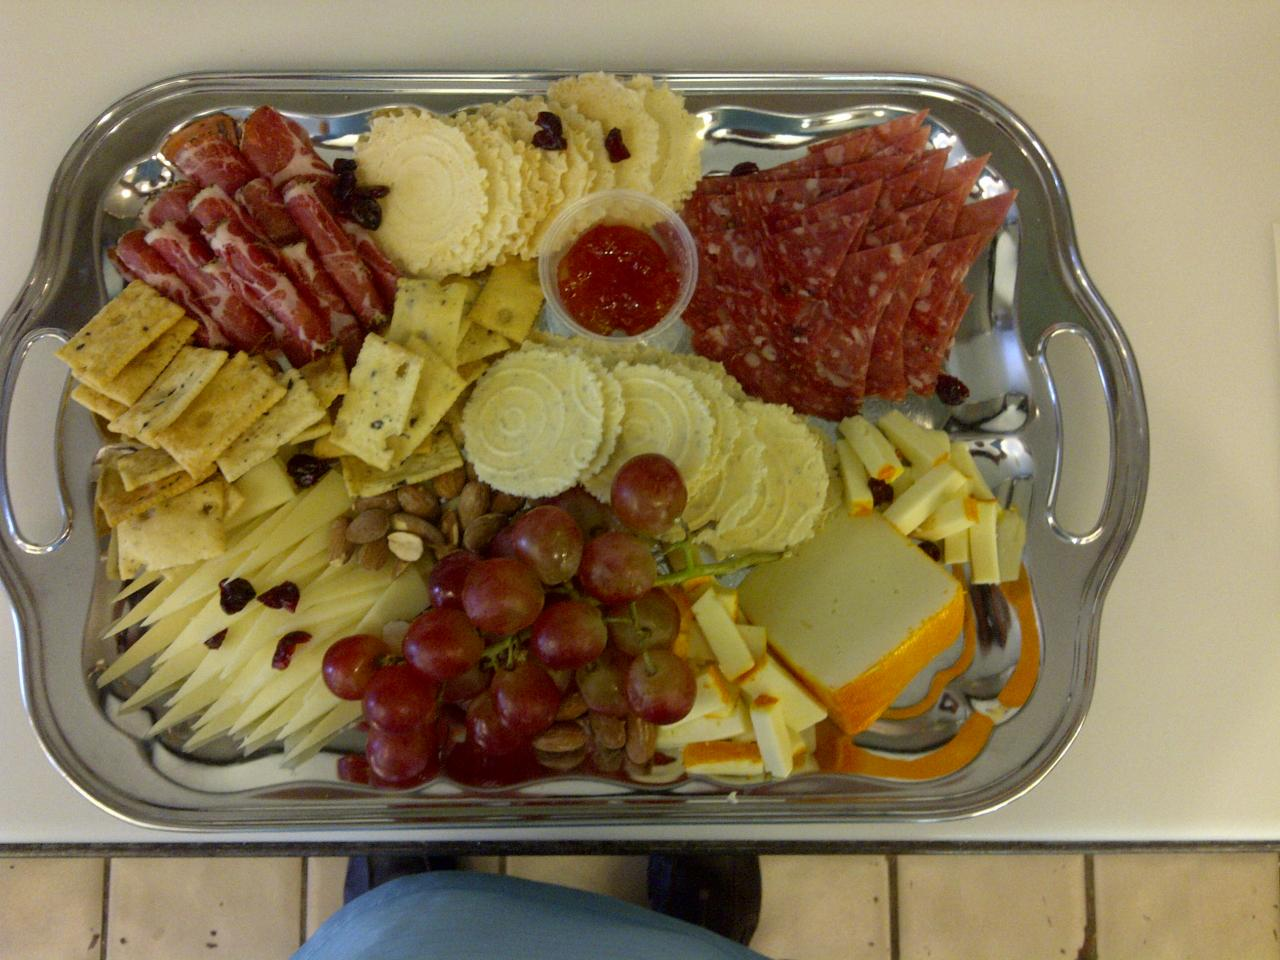 Meat And Cheese Tray Costco Swiss Cheeses